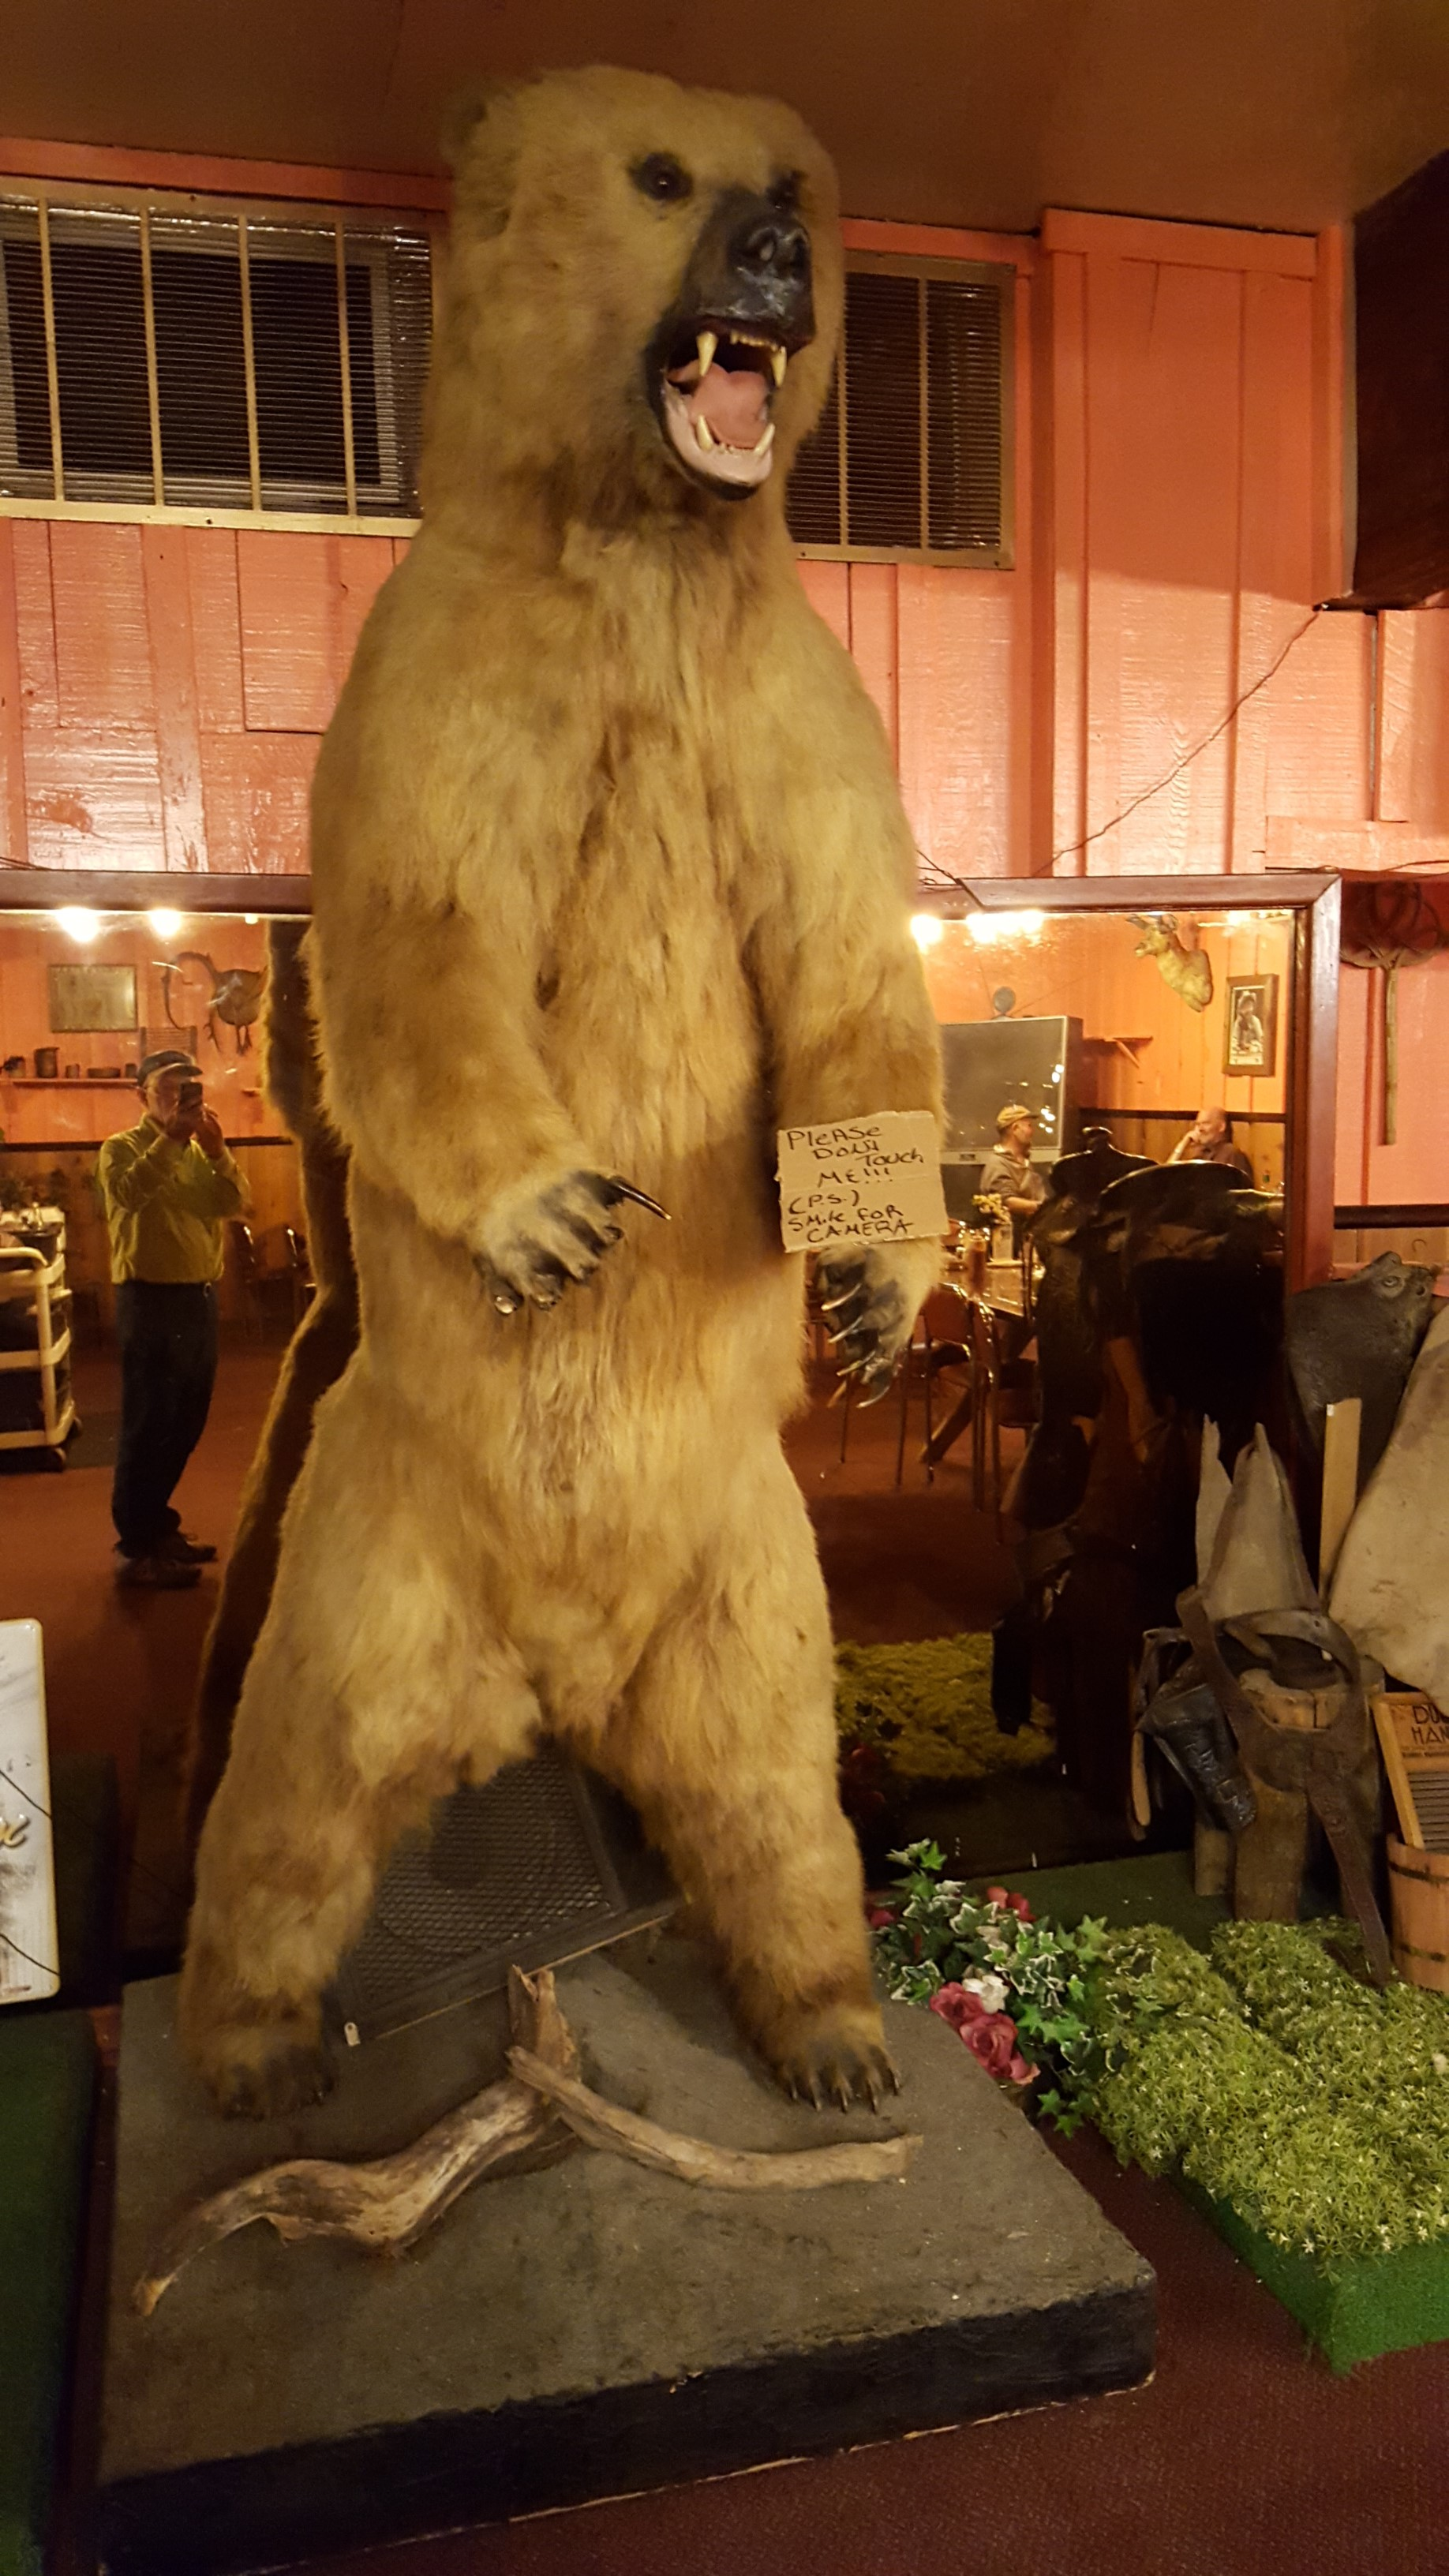 I was having dinner and this bear showed up. So, I decided to take a picture.